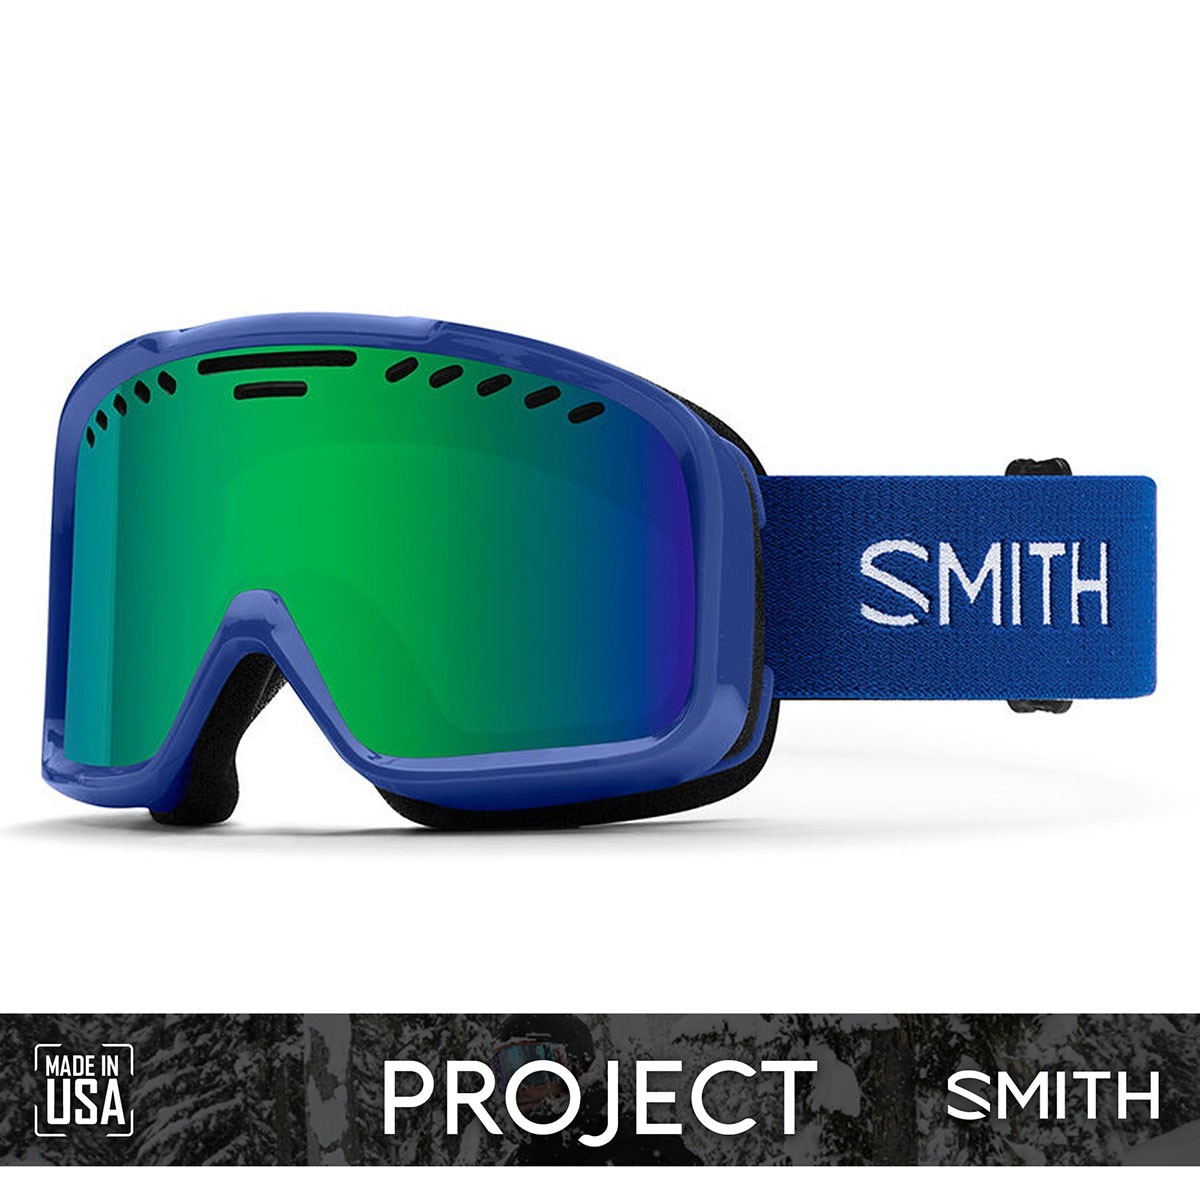 SMITH PROJECT Klein Blue | S3 GREEN SOL-X Mirror - Изображение - AQUAMATRIX